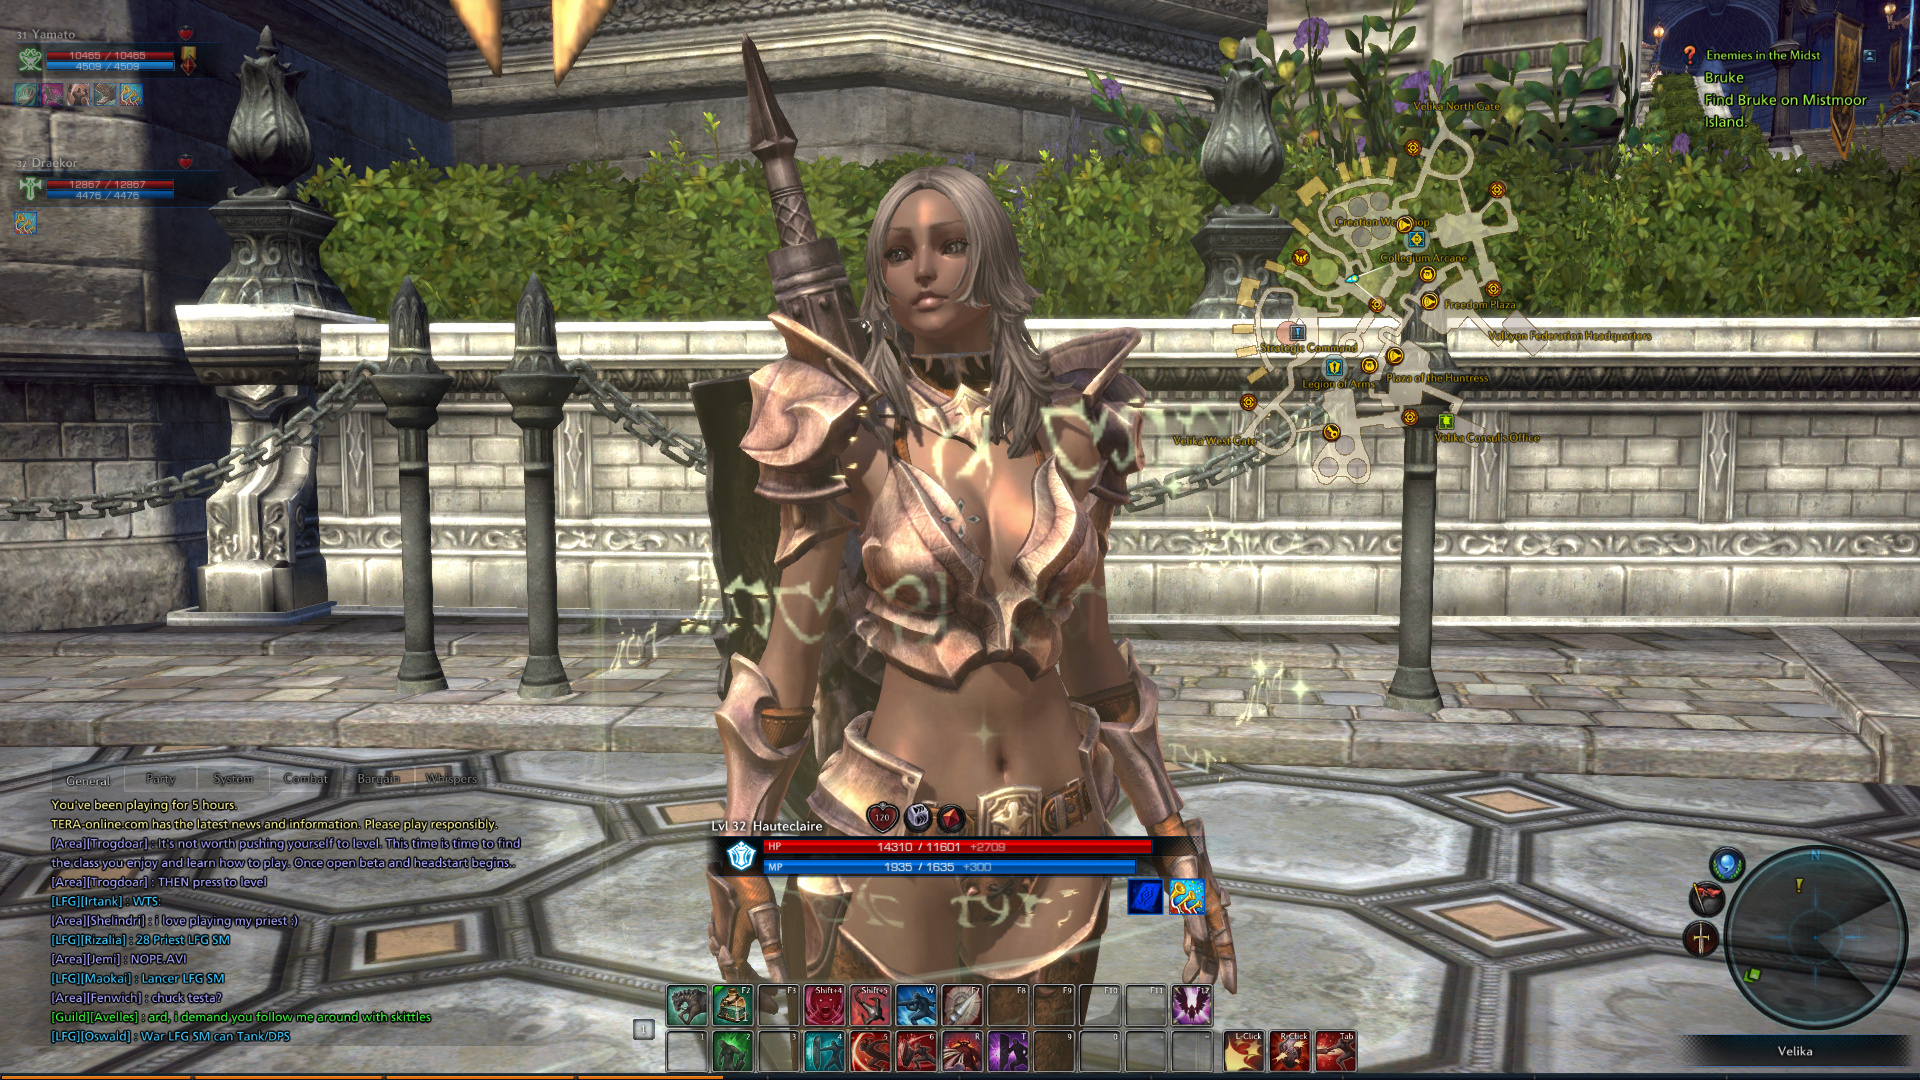 kitha games opening gameplay trailer experience preview online media removed heres tera